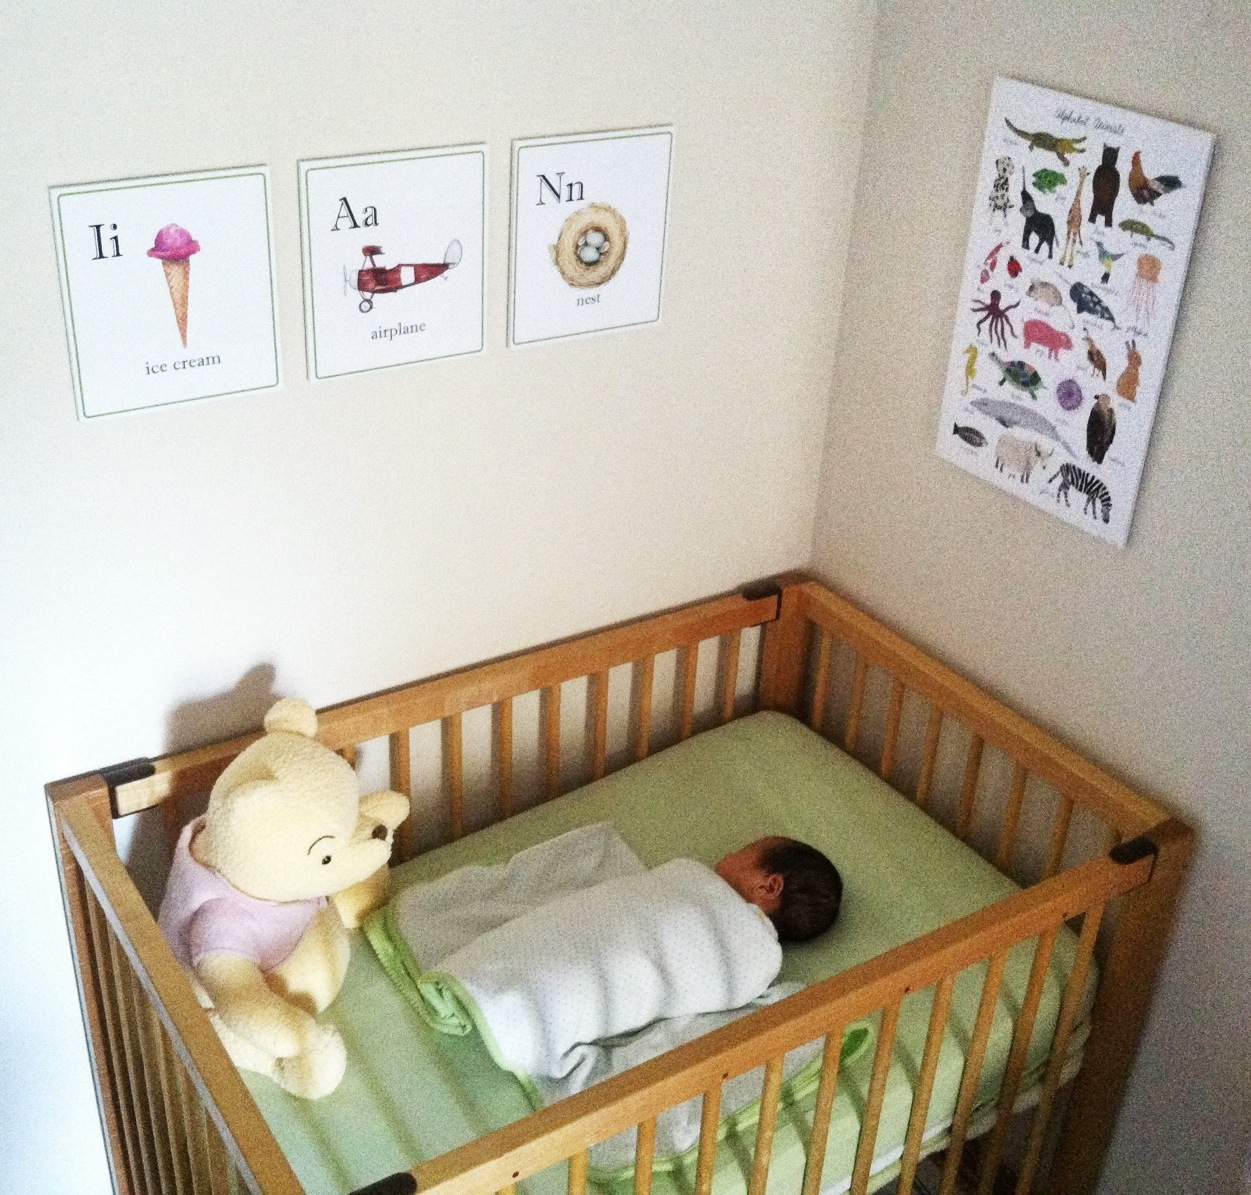 My friend Tia just sent me this photo of her baby boy in his nursery. What a beautiful little soul.   And how special seeing my alphabet animals by Ian's bedside. Everything about this photo is pulling on my heart strings!!!   Just had to share.